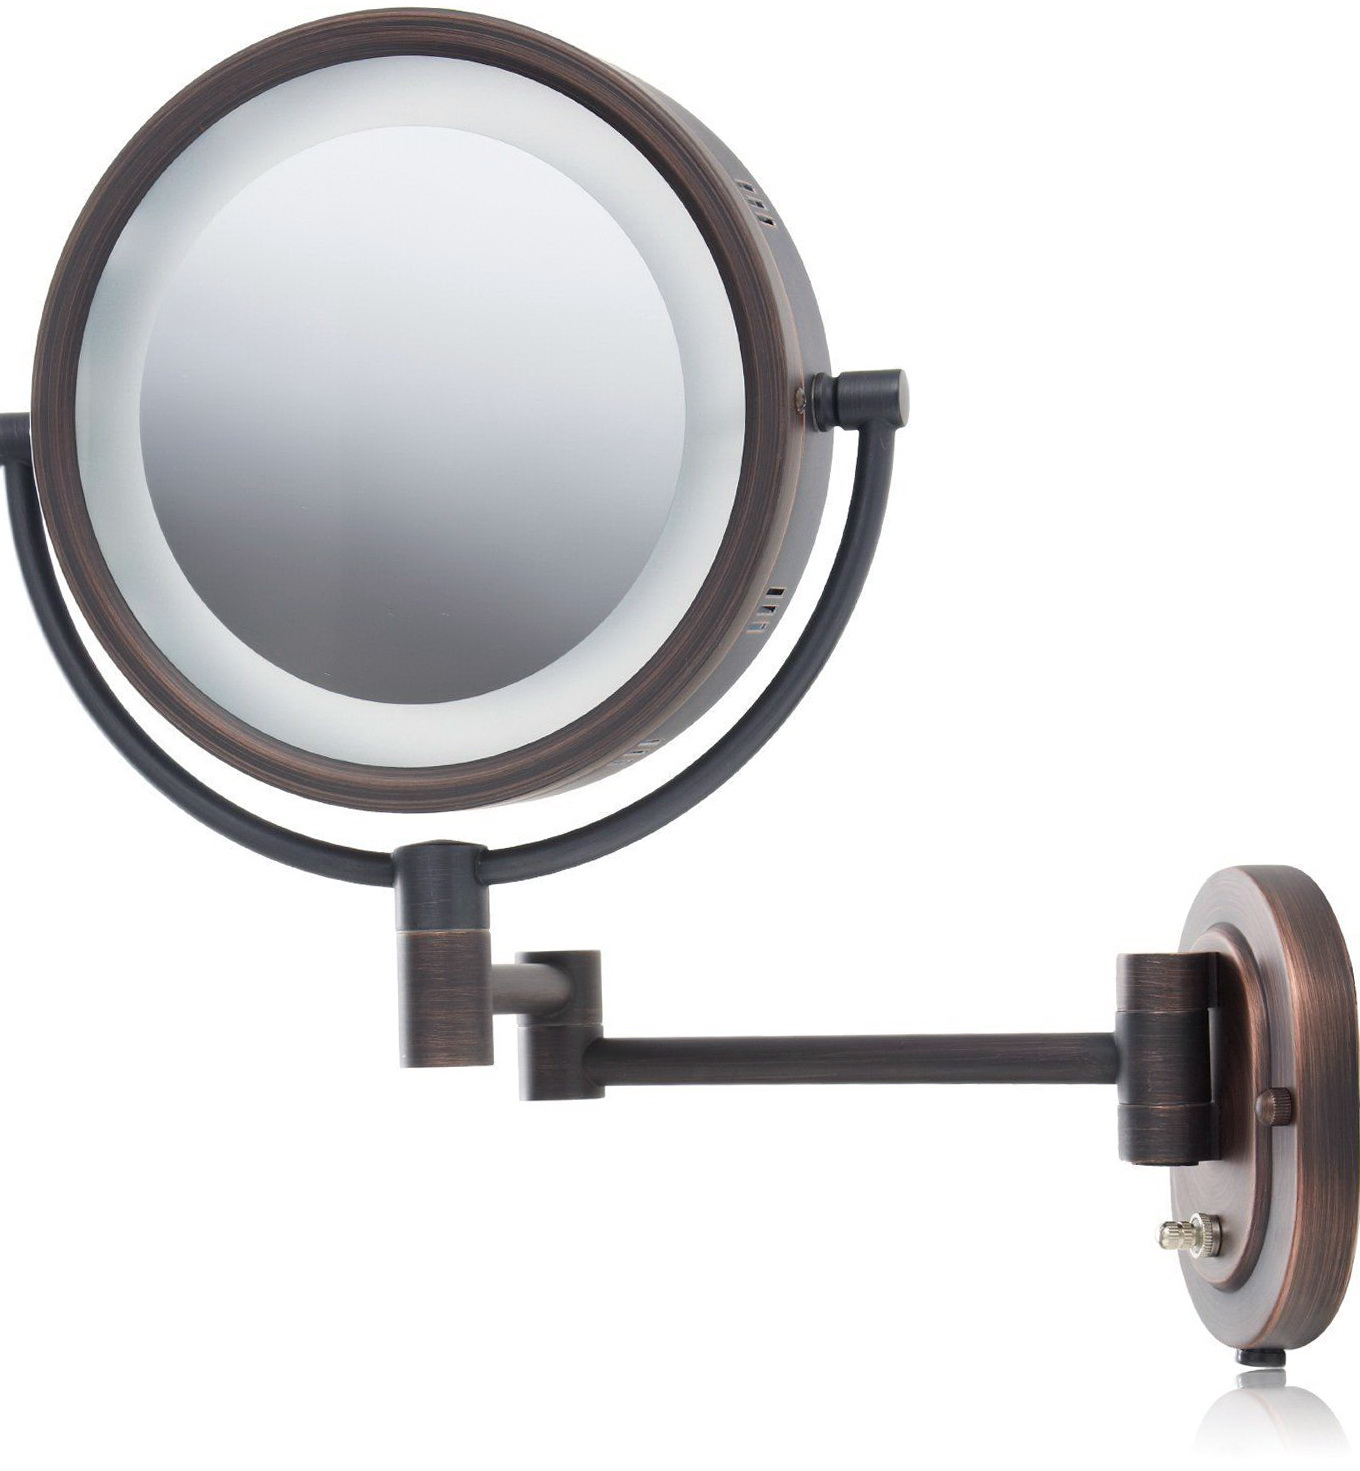 Wall Mounted Makeup Mirror Oil Rubbed Bronze Home Design